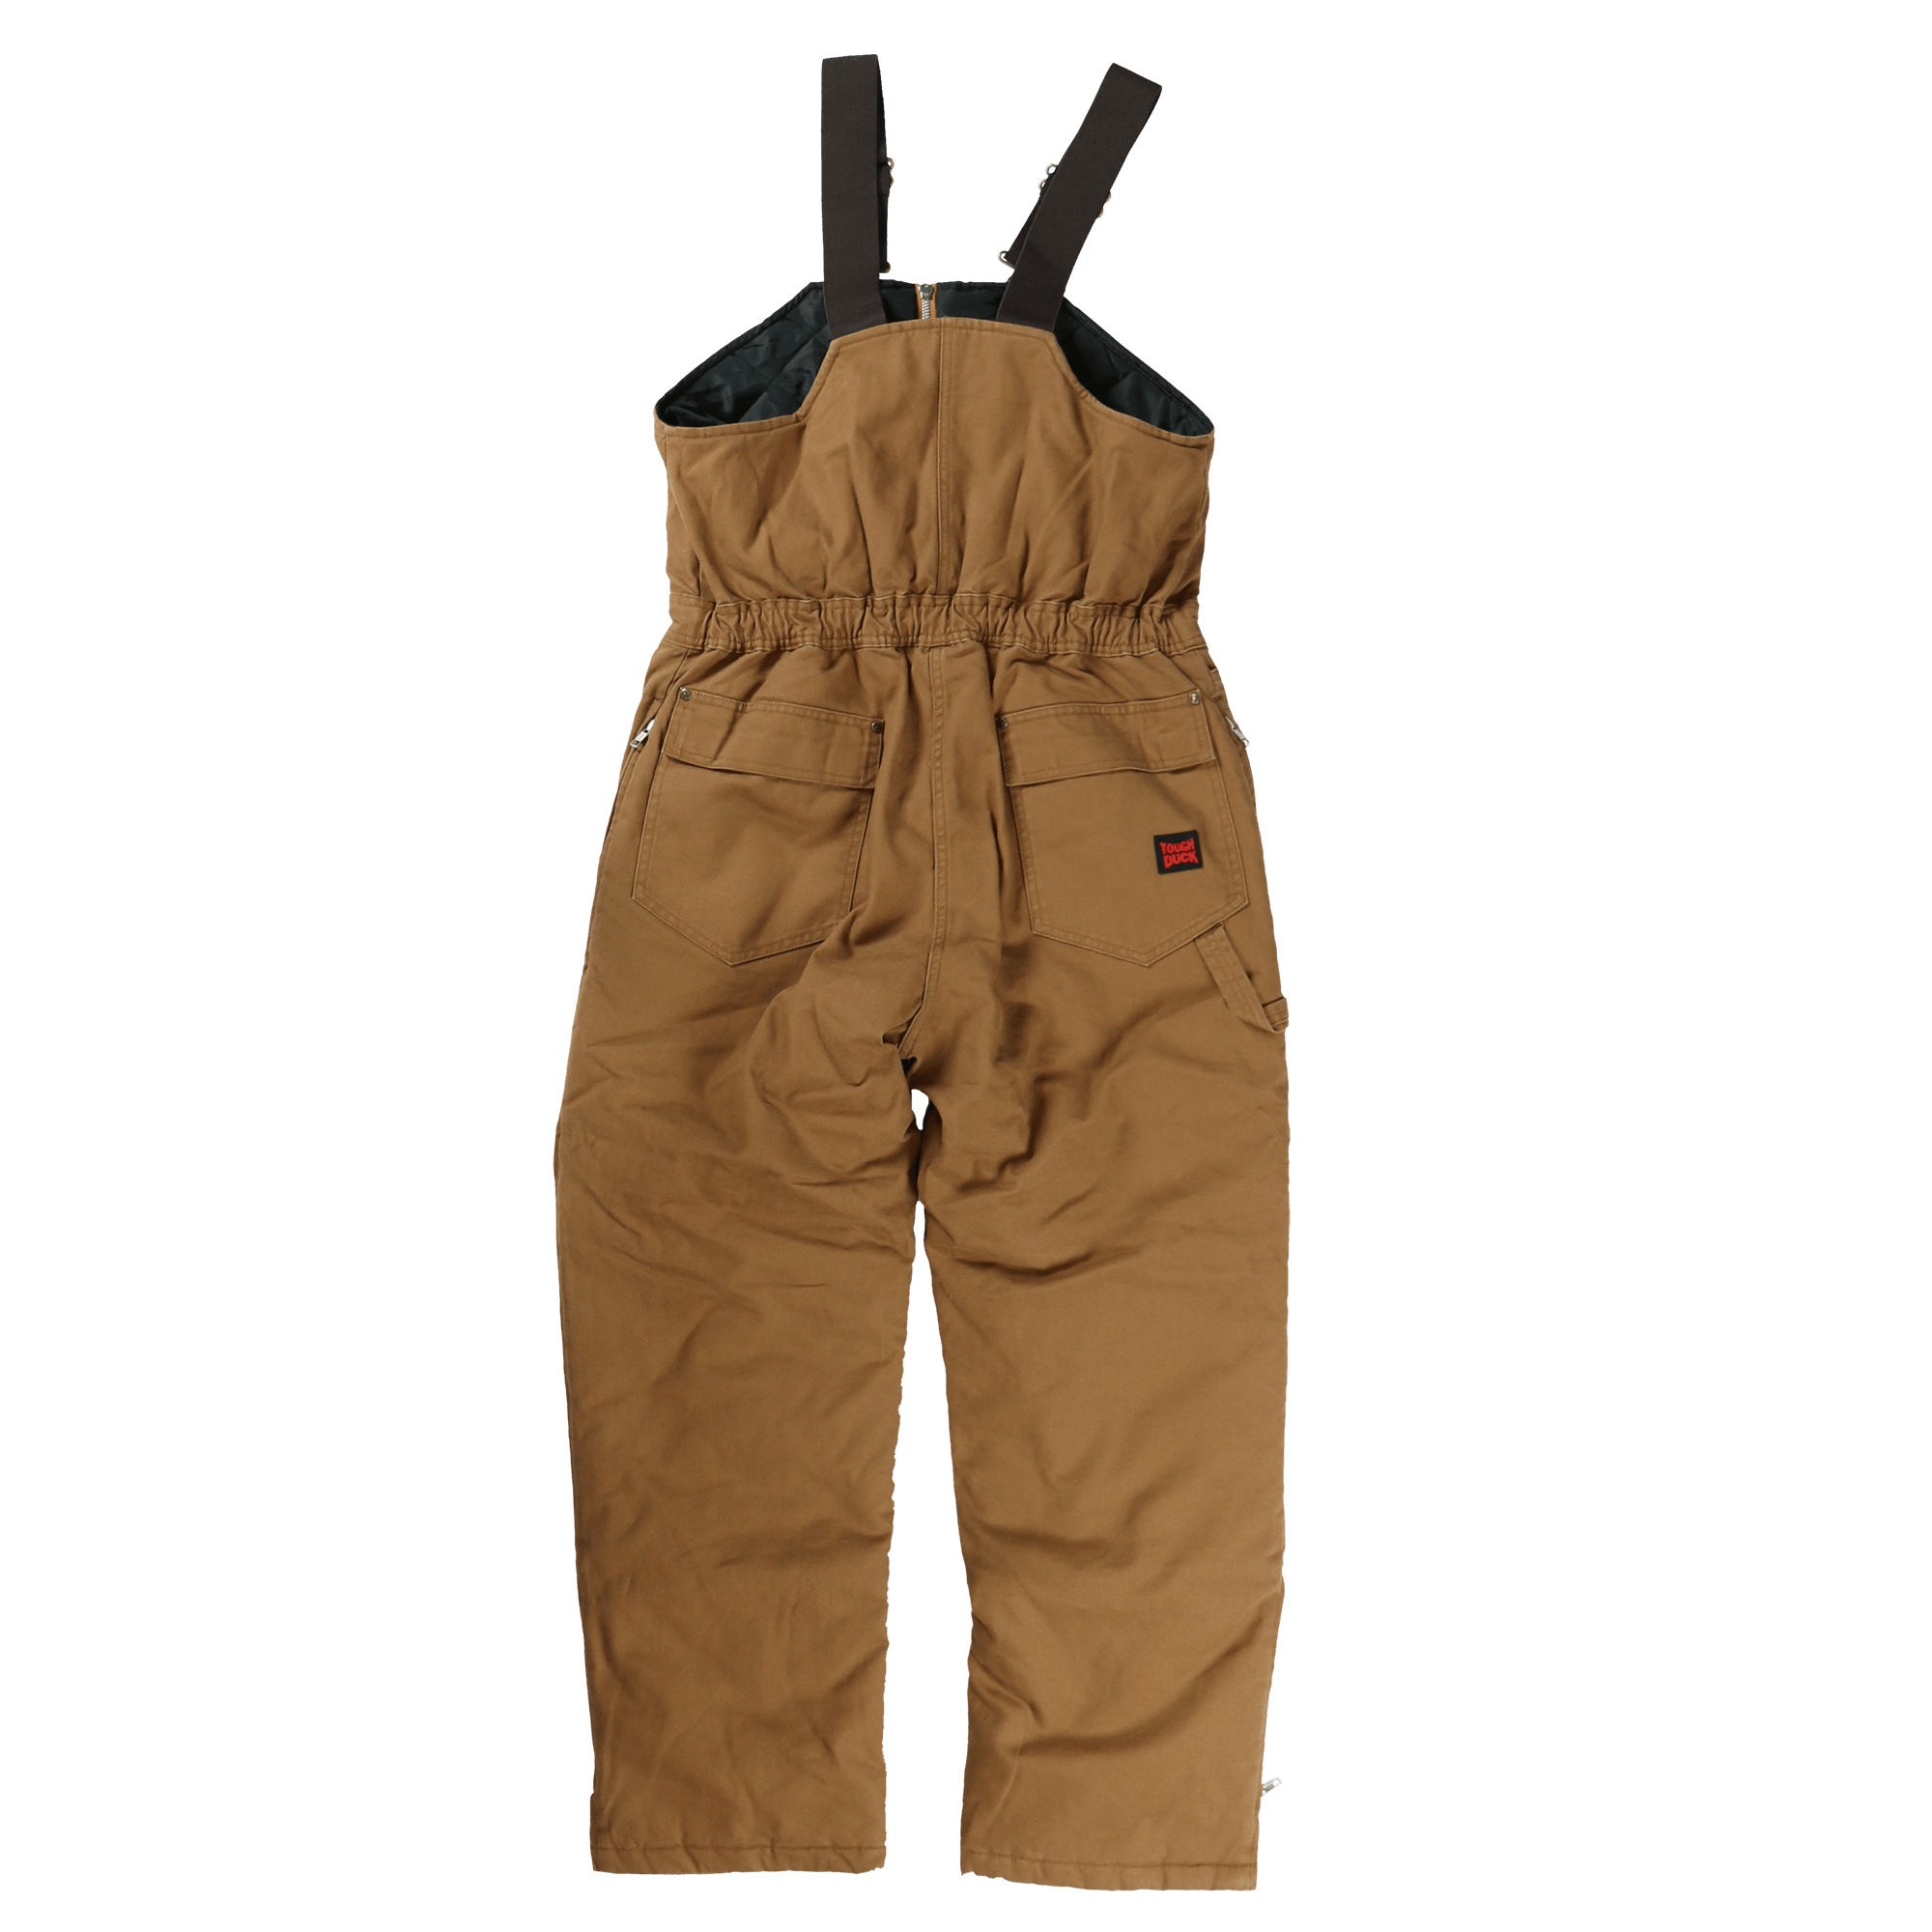 Tough Duck Womens Insulated Duck Overalls Brown Back View WB02